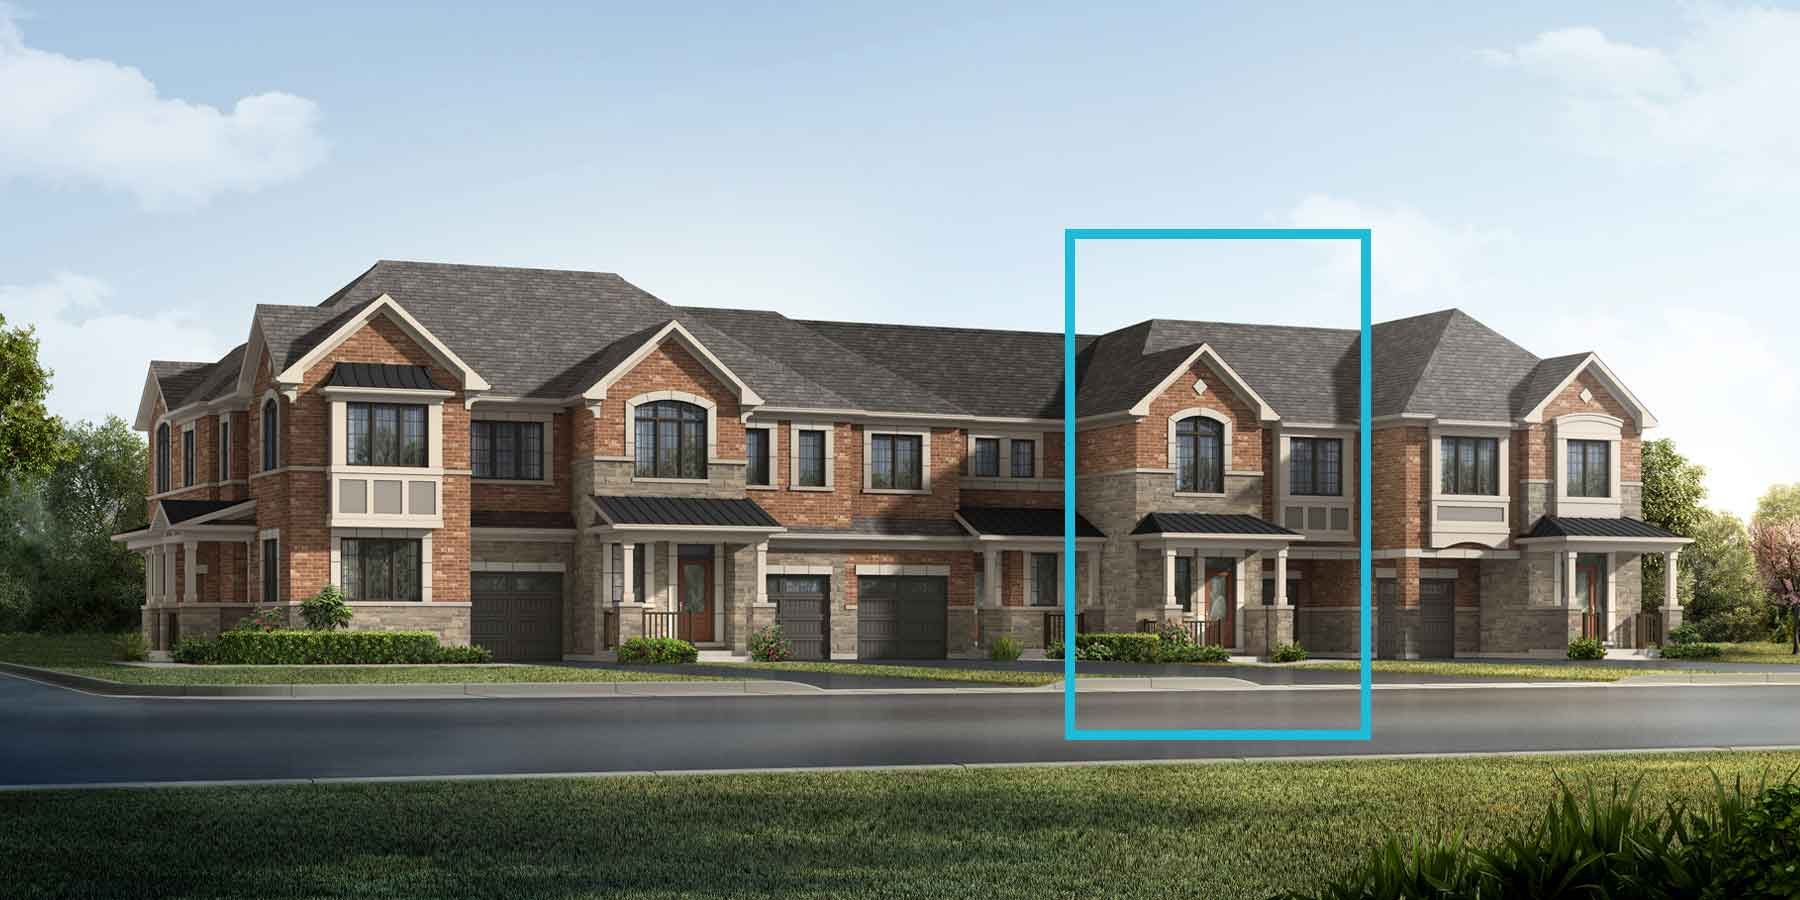 Mint Plan englishmanor_springwater_mint at Springwater in Markham Ontario by Mattamy Homes